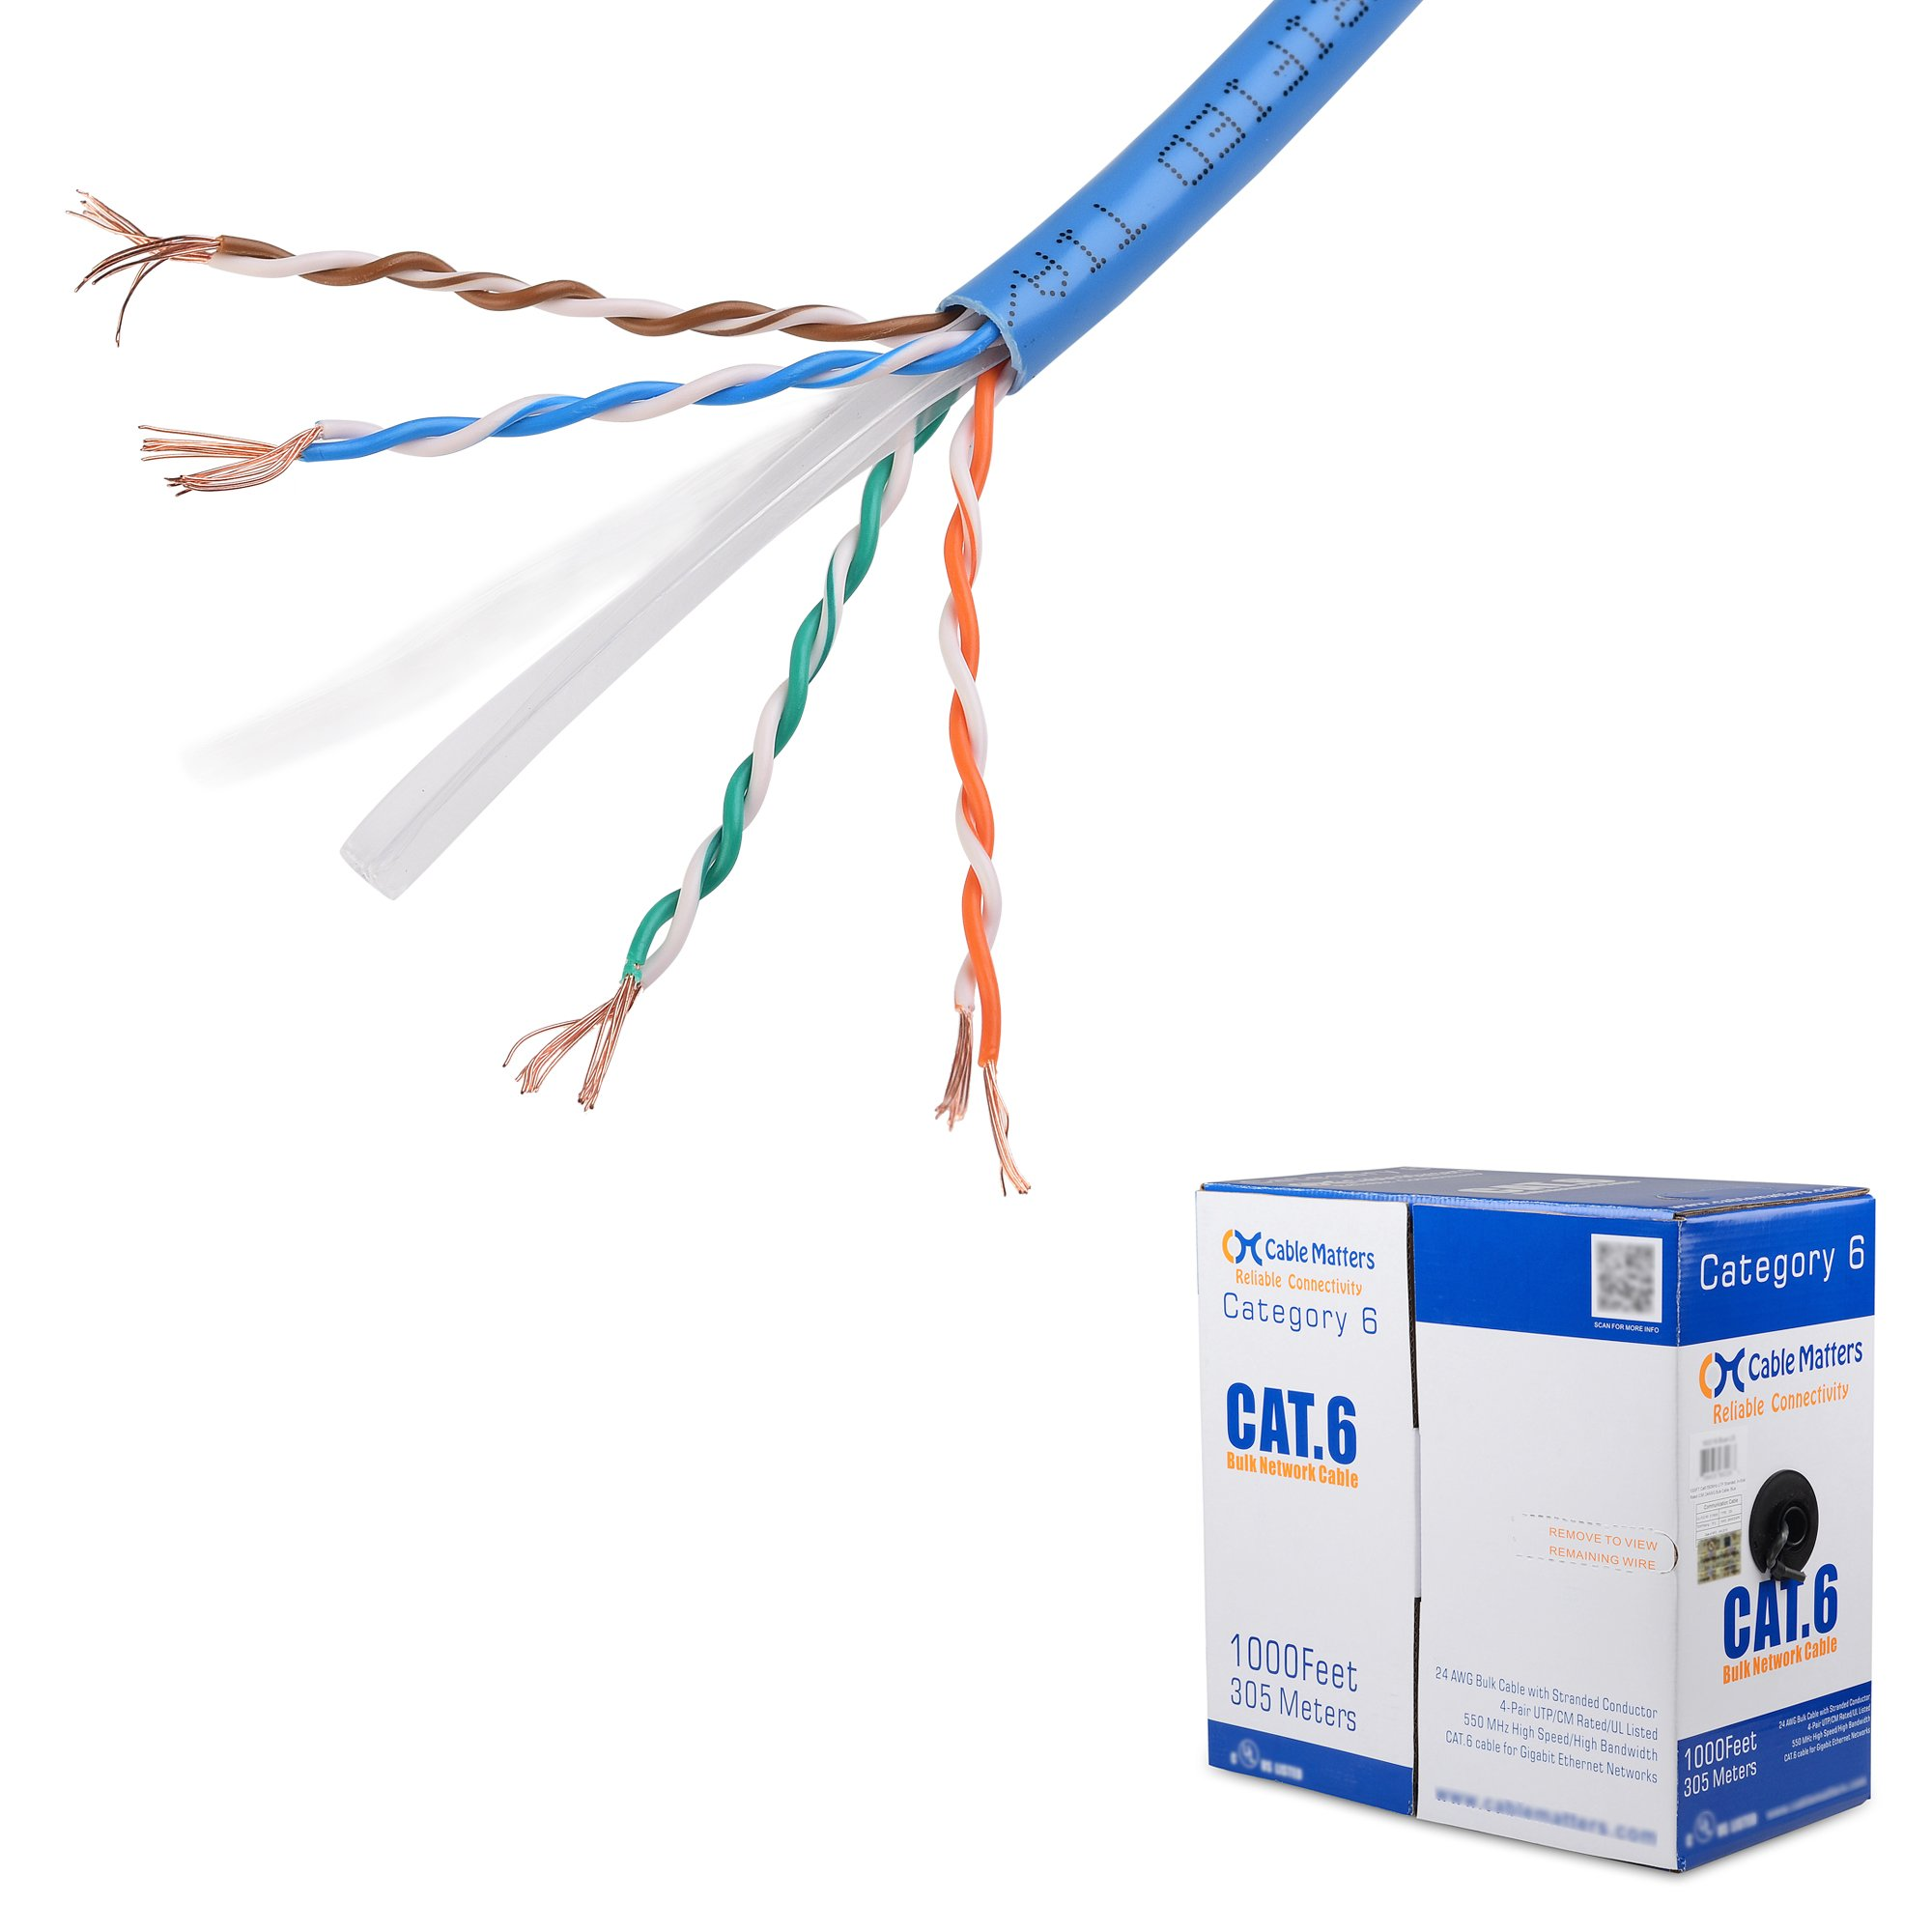 [UL Listed] Cable Matters In-Wall Rated (CM) Cat6 Stranded Bulk Ethernet Cable in Blue 1000 Feet by Cable Matters